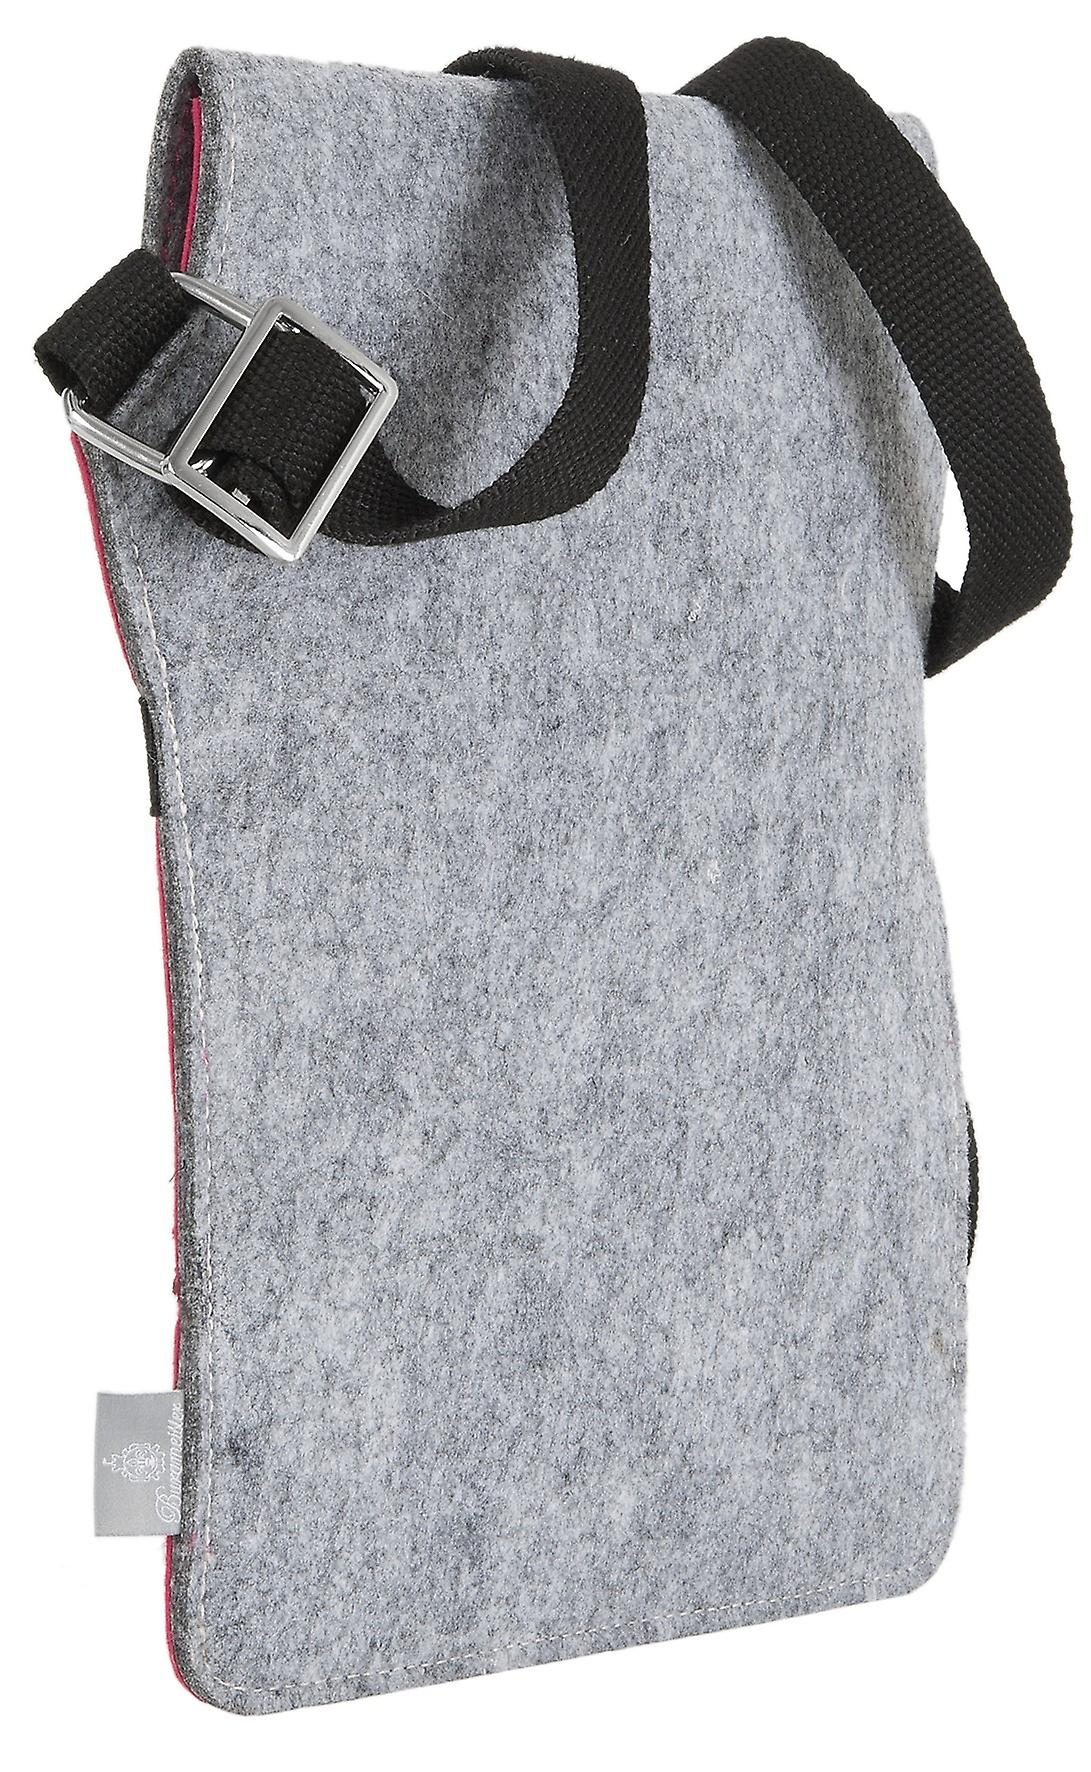 Burgmeister ladies/gents Ipad-/Tablet PC bag felt, HBM3002-169